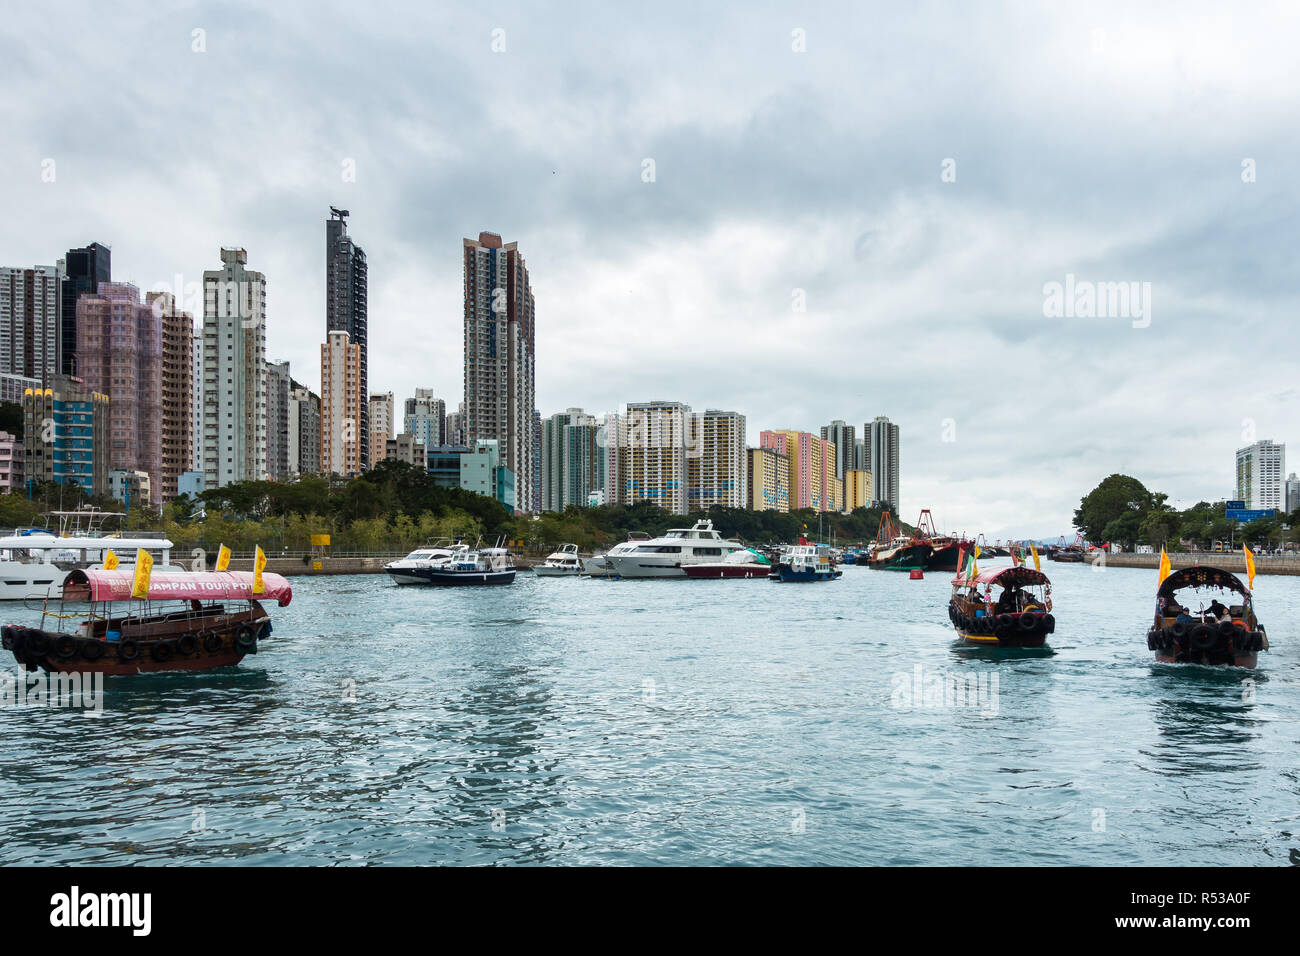 Sampan ride is a popular tourist activity to explore Aberdeen habour and the floating village where people live on house boats, Hong Kong Stock Photo